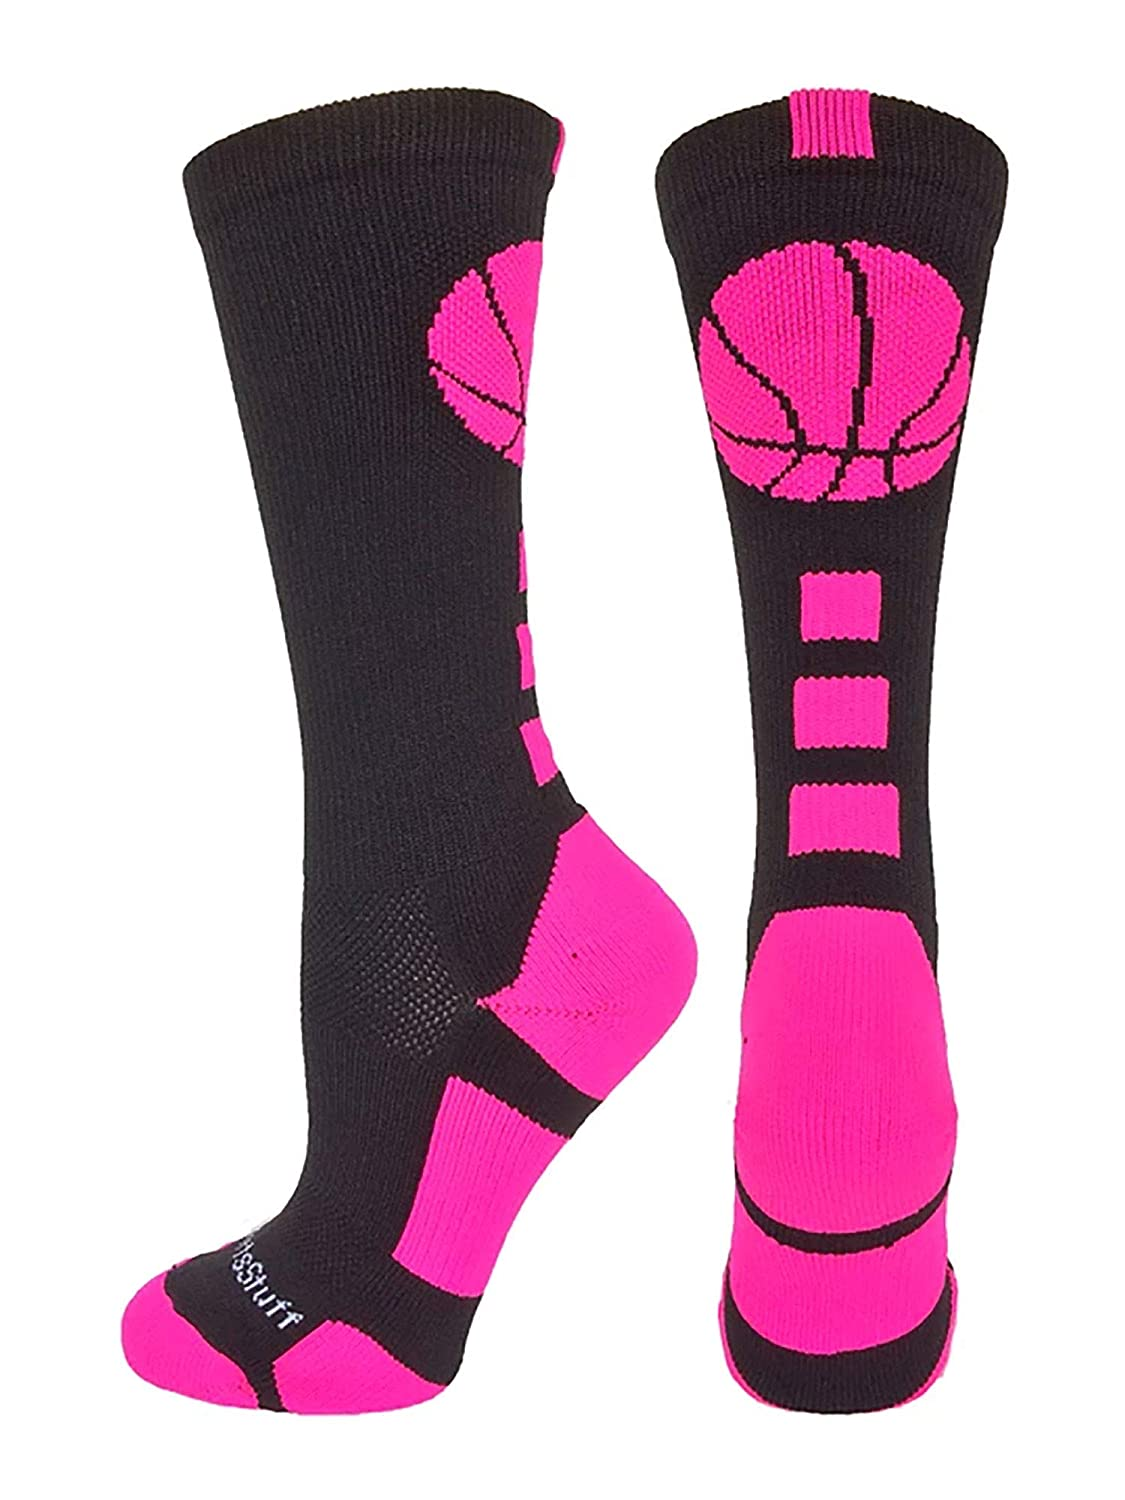 MadSportsStuff Basketball Socks with Basketball Logo Athletic Crew Socks - Made in The USA